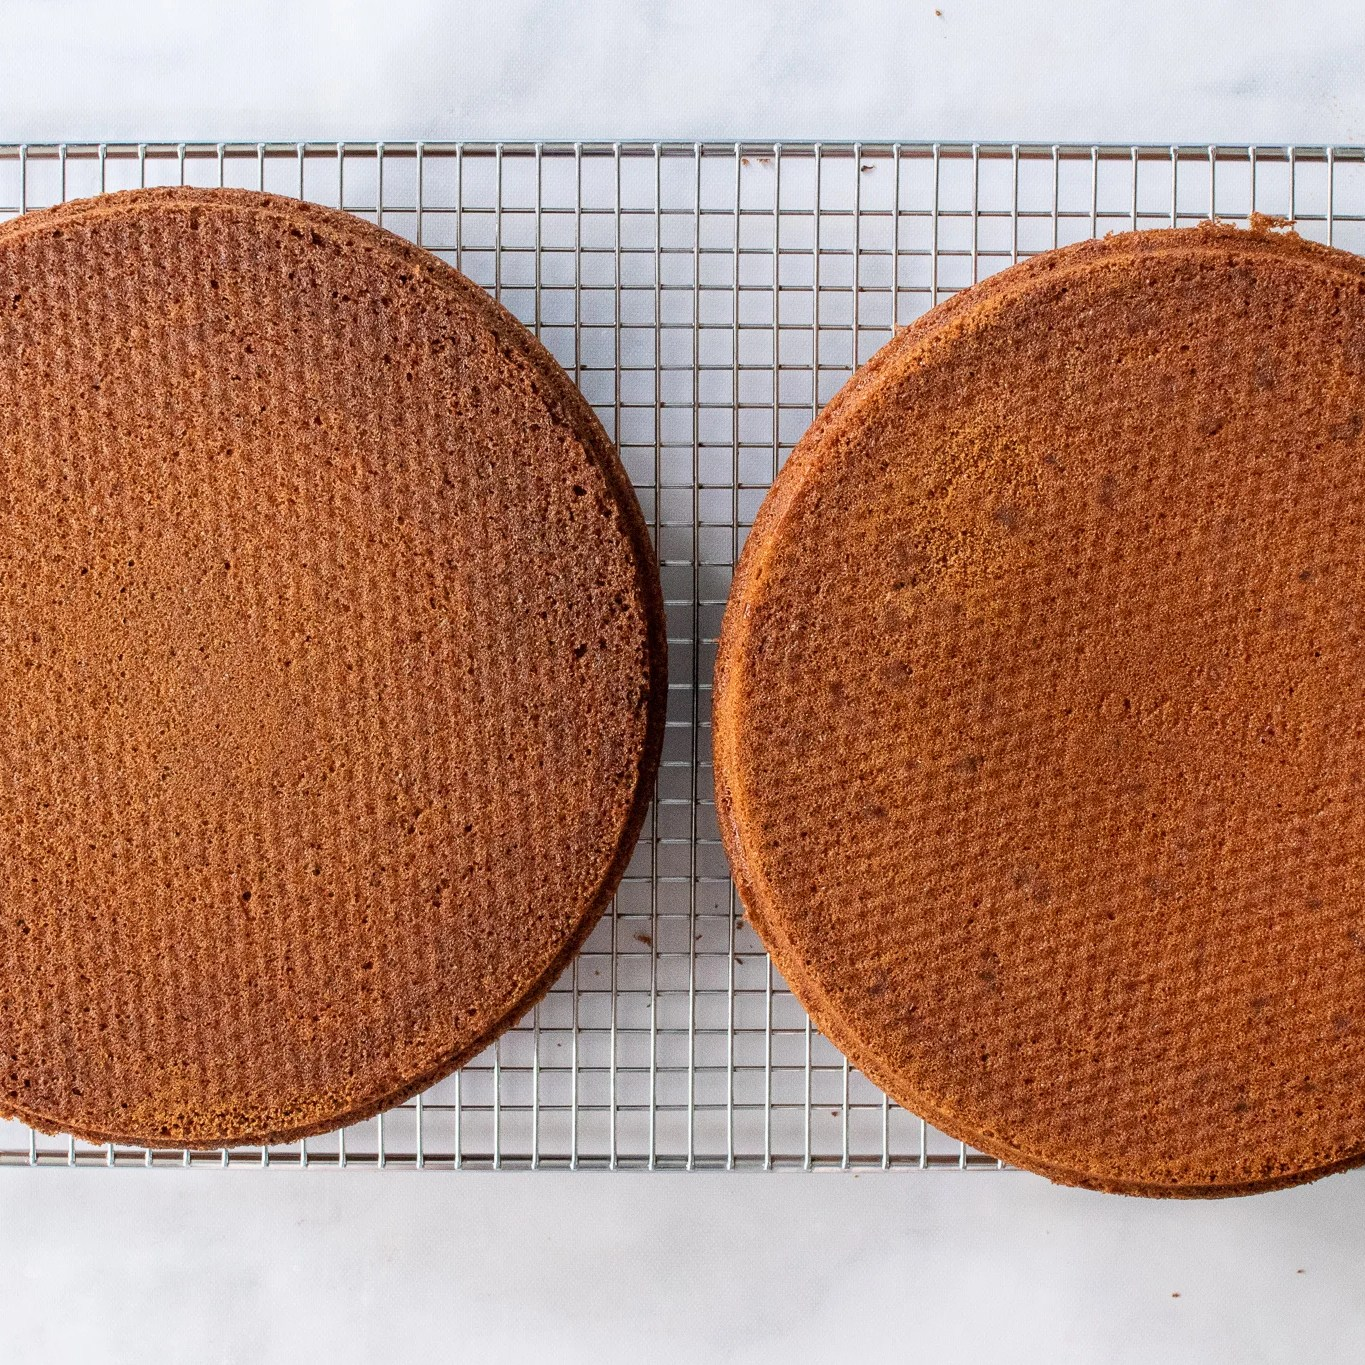 baked cake on a cooling rack